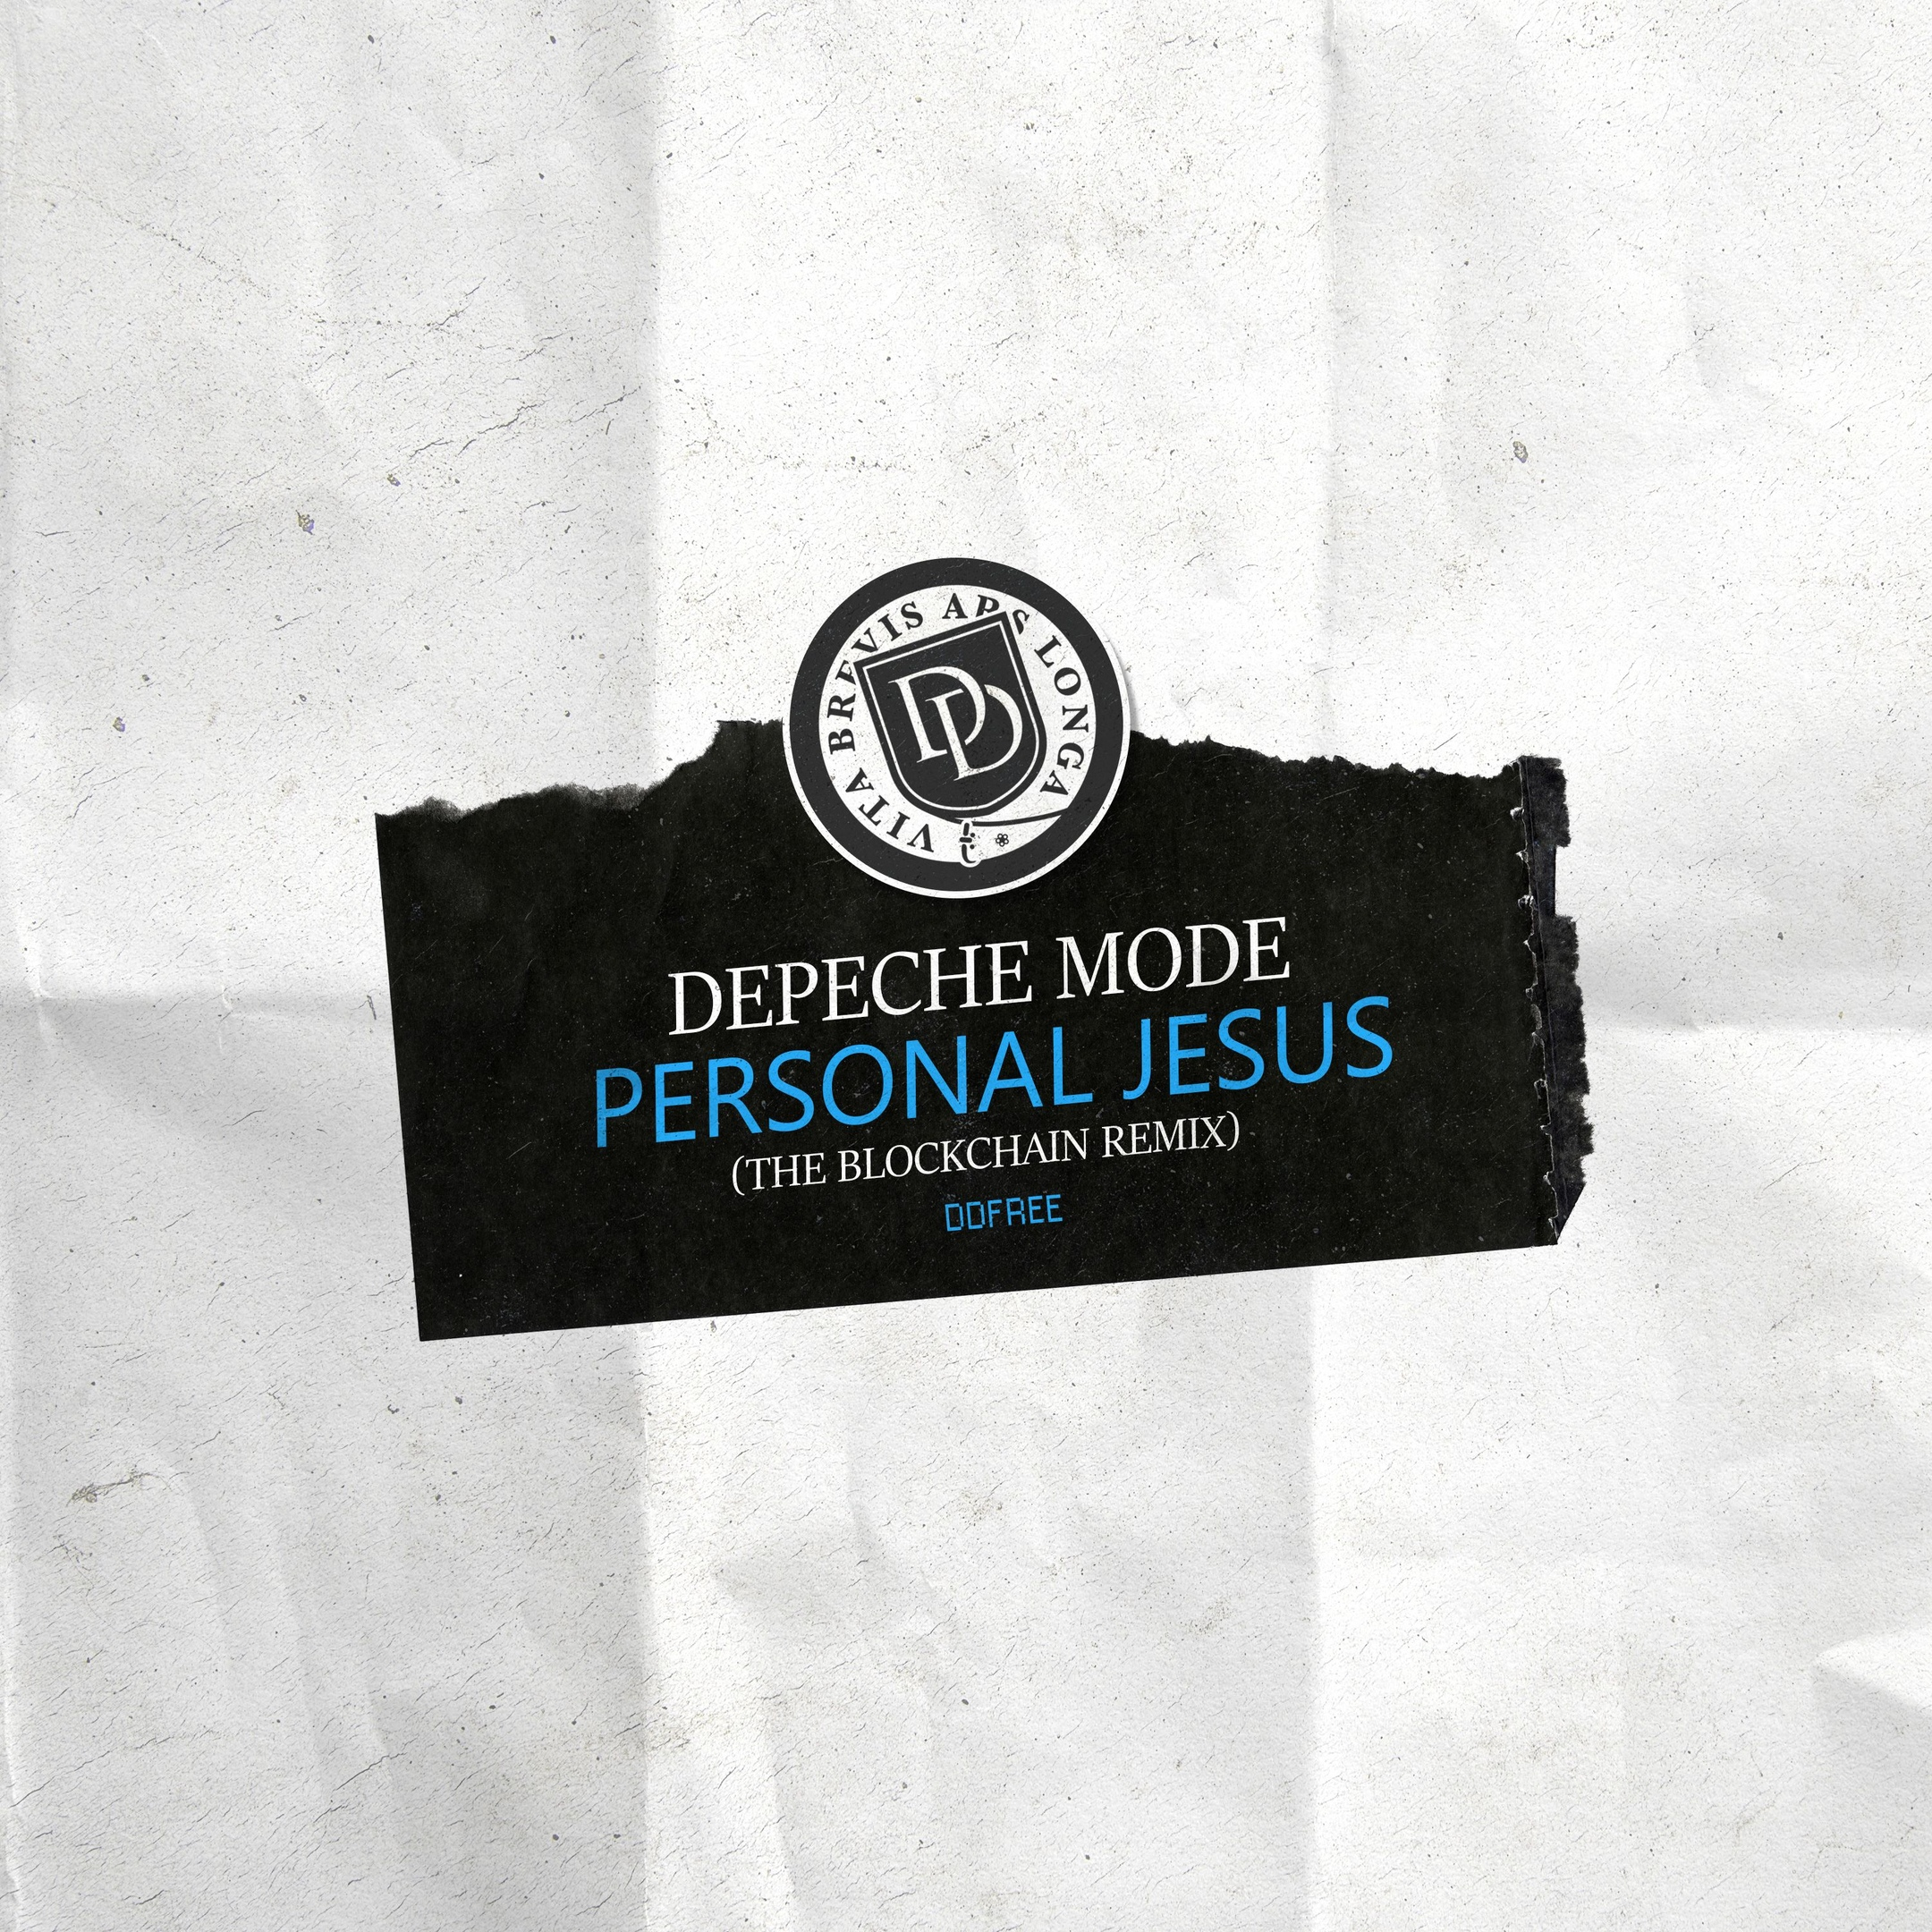 Depeche Mode - Personal Jesus (The Blockchain Remix)